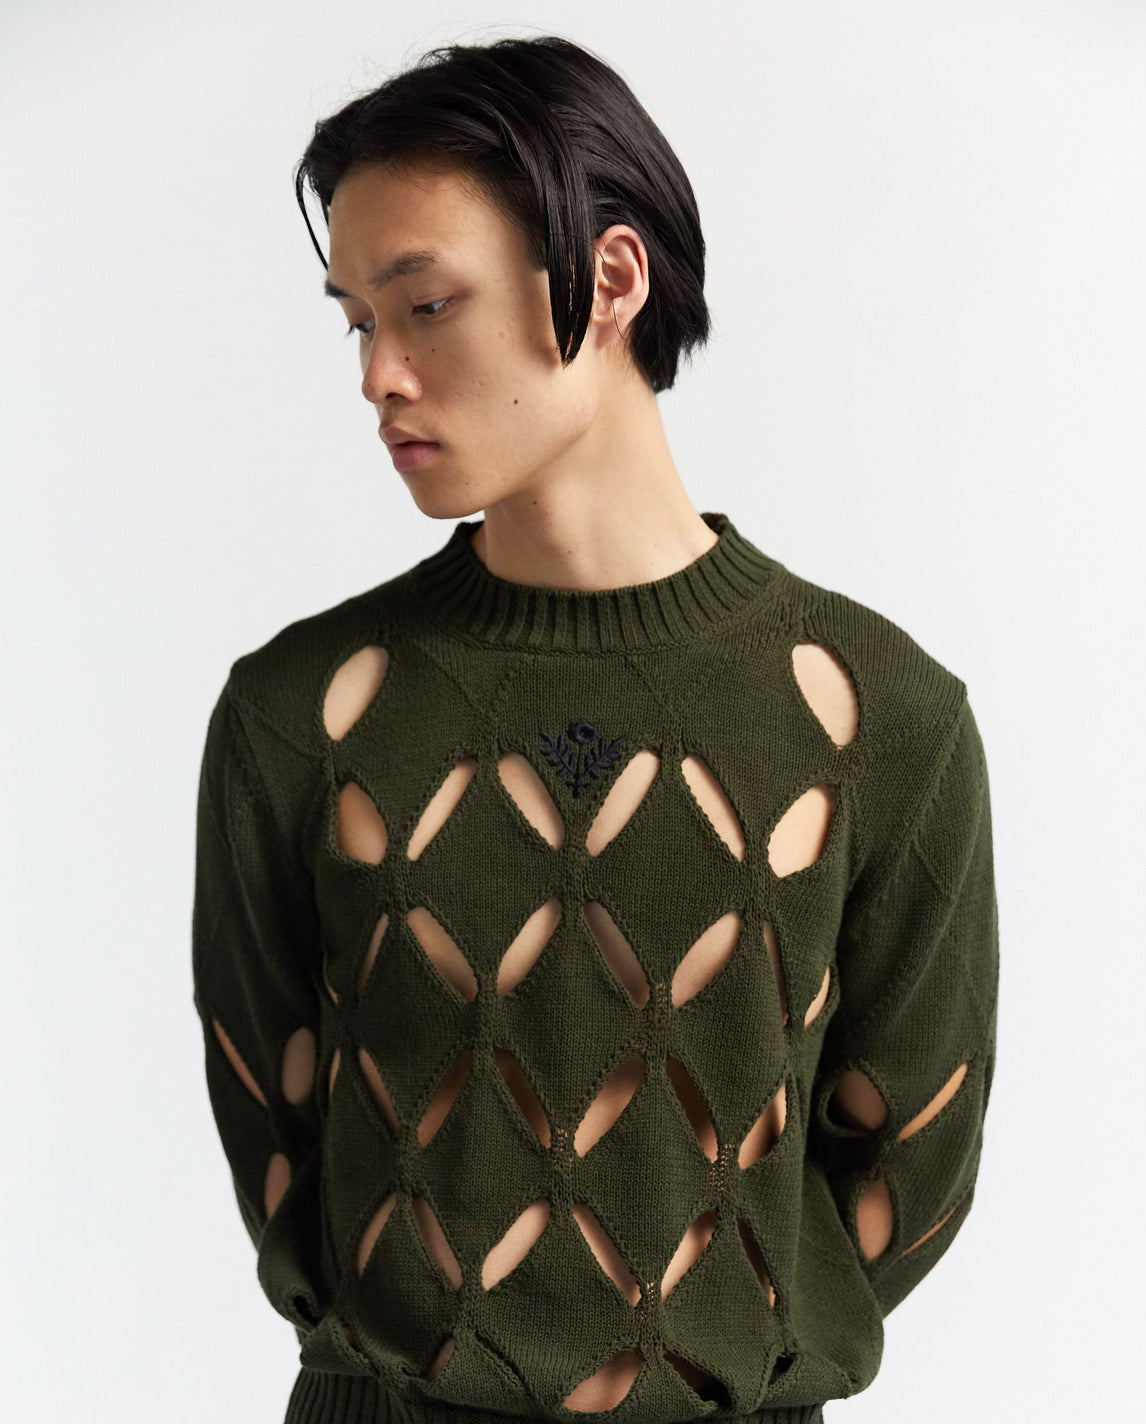 Diamond Slashed Jumper With Floral Embroidery - Green MENS STEFAN COOKE